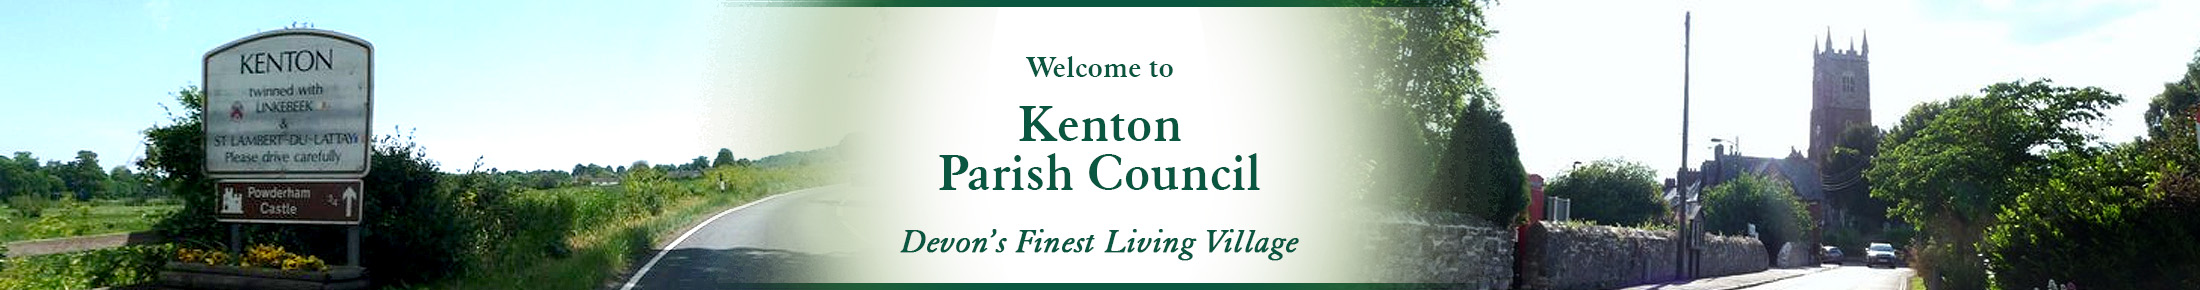 Header Image for Kenton Parish Council